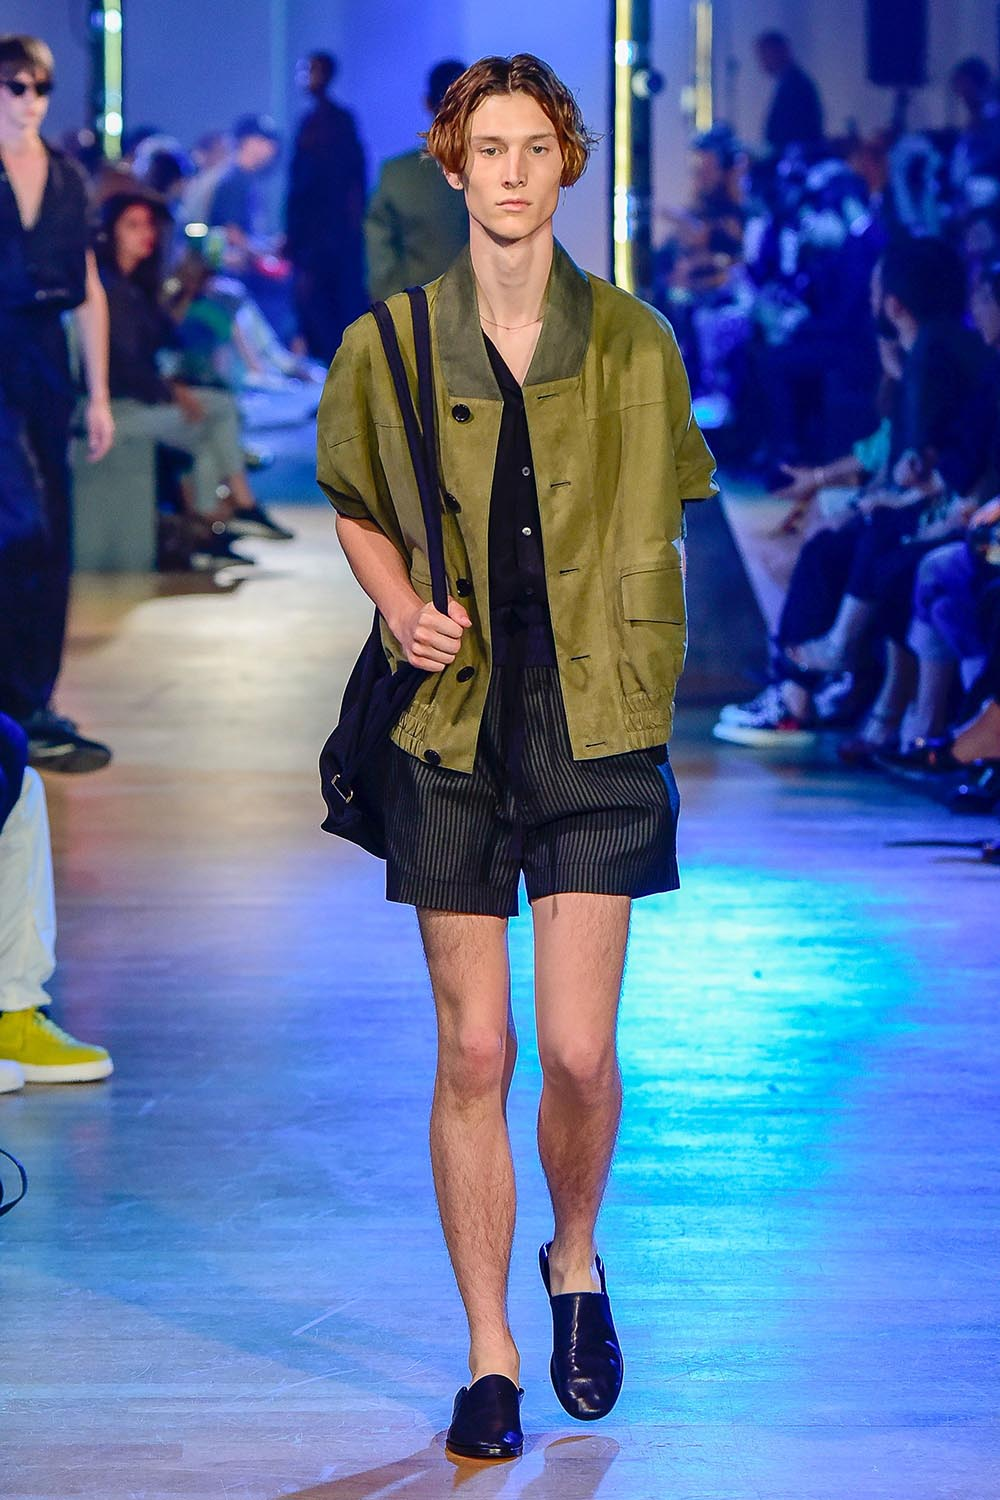 Cerruti 1881 Paris Fashion Week Men's SS19 - Sagaboi - Look 5